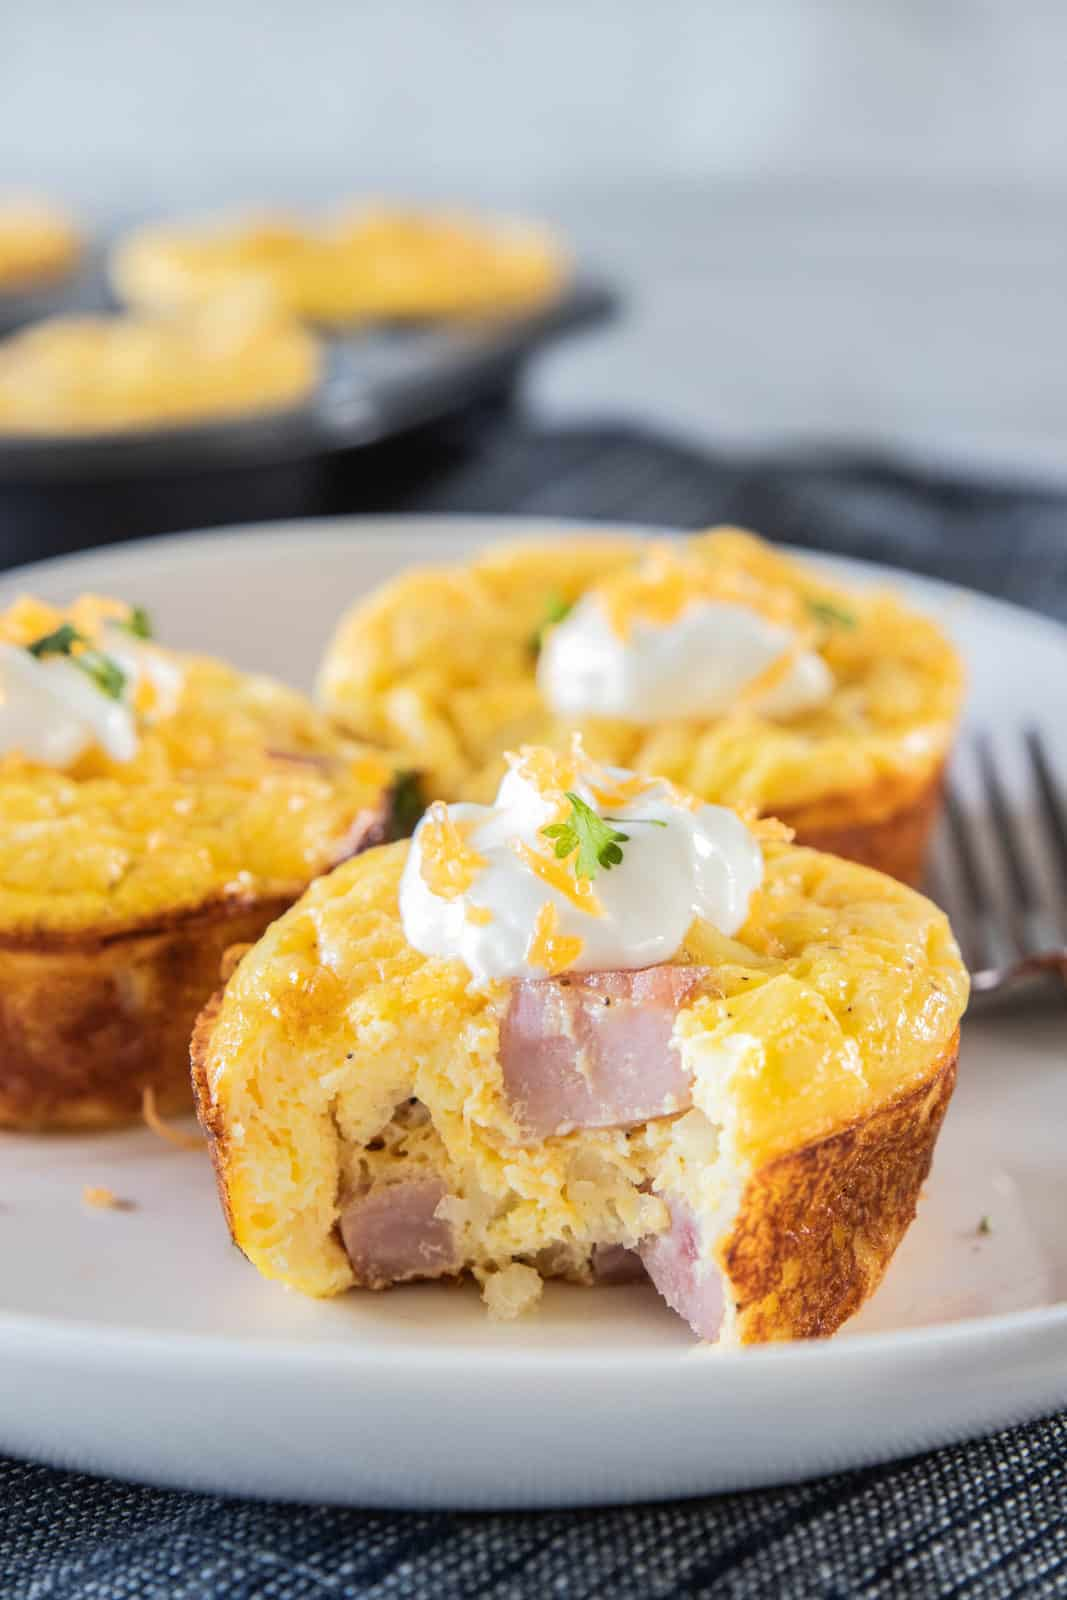 ham and cheese egg cup on plate